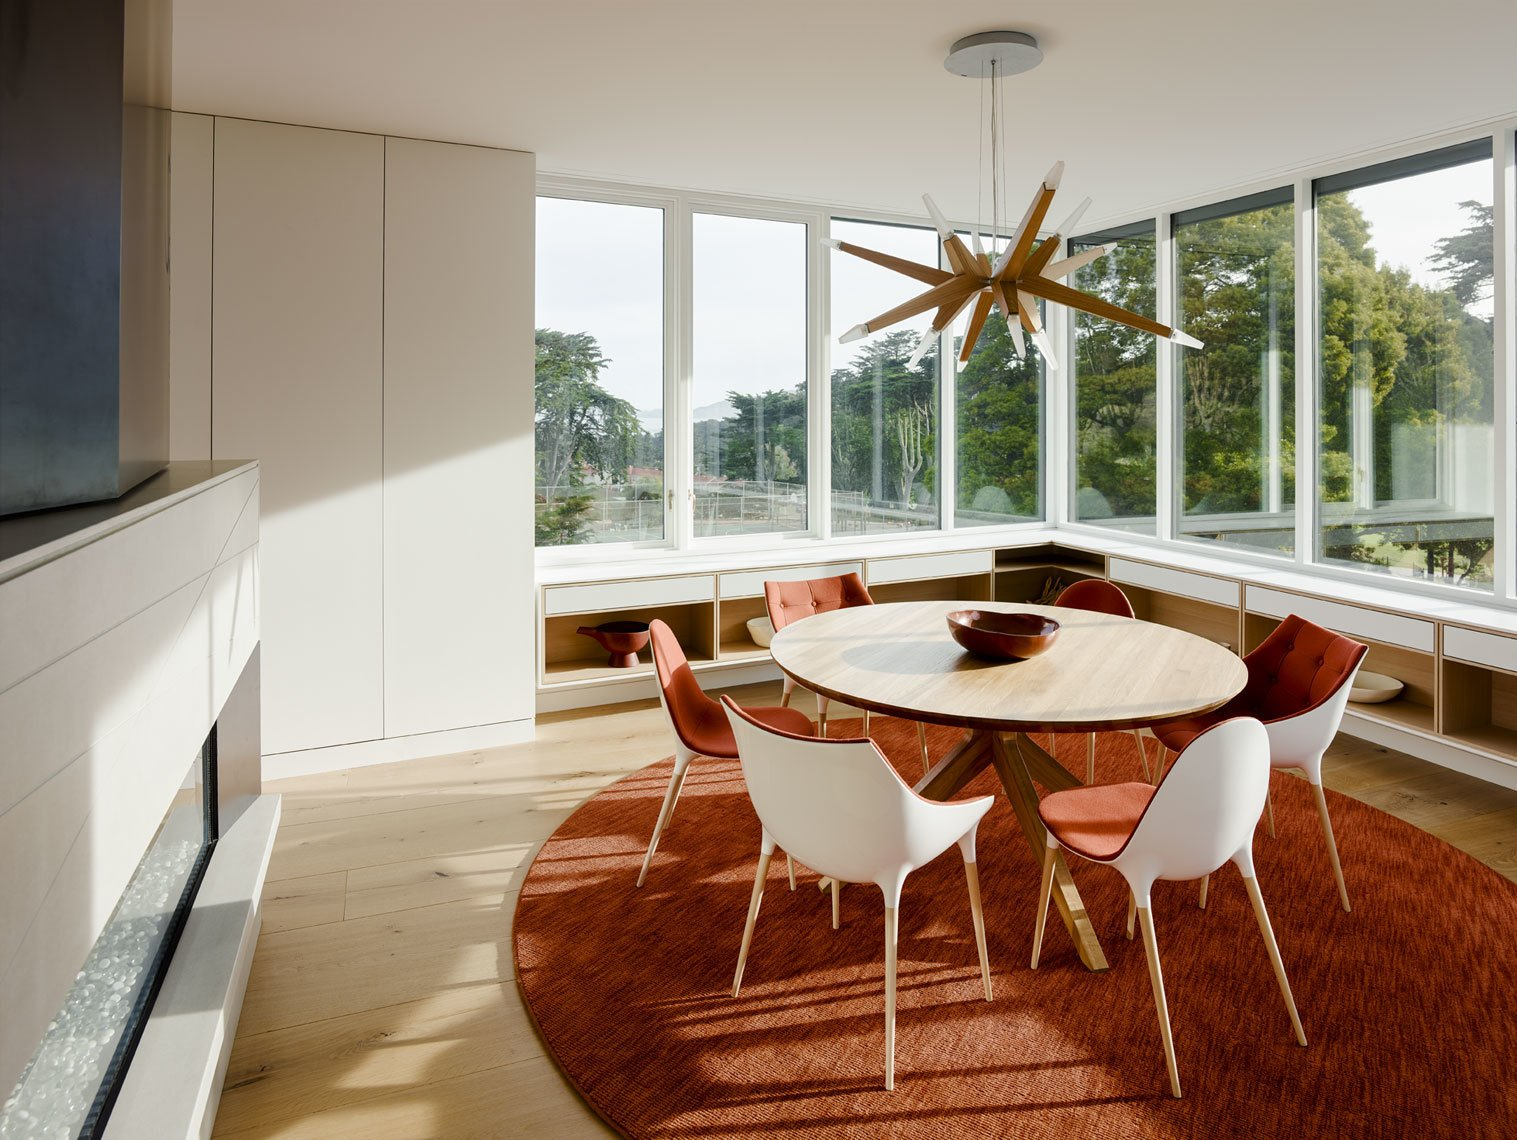 Dining, Chair, Ceiling, Light Hardwood, Ribbon, Table, Pendant, and Gas Burning  Best Dining Light Hardwood Chair Gas Burning Photos from Spruce